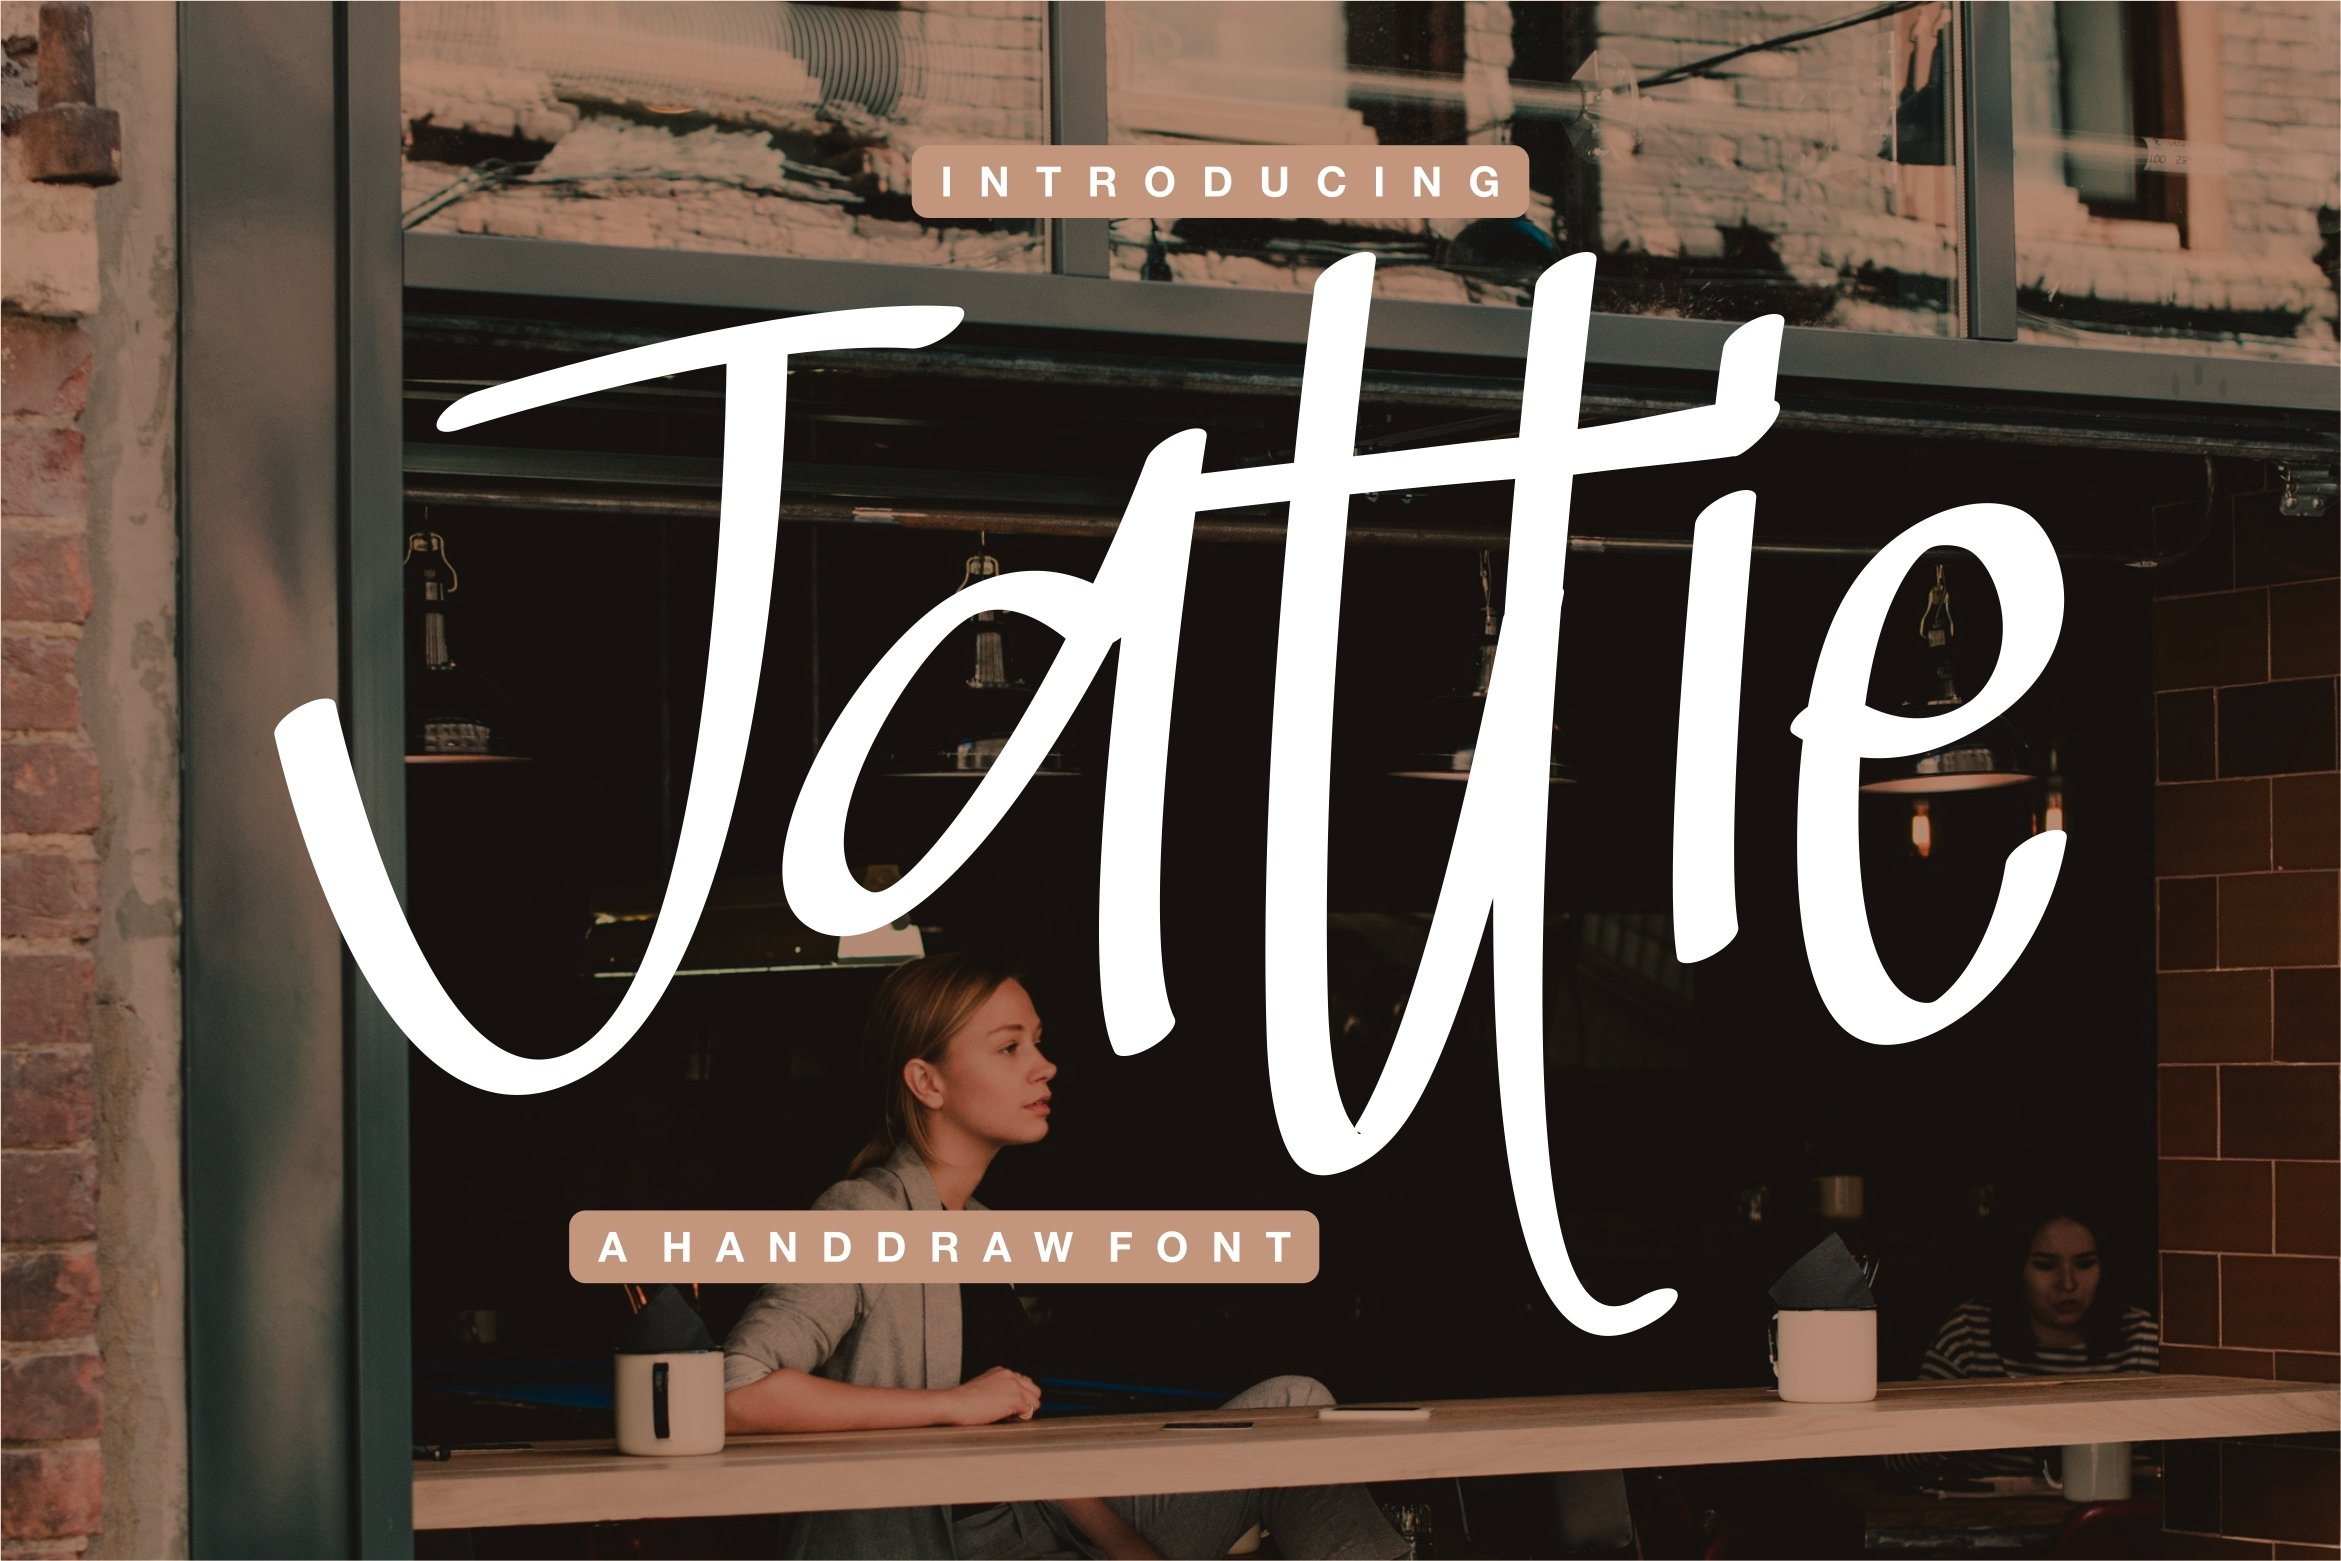 Jattie - A Handdraw Font example image 1